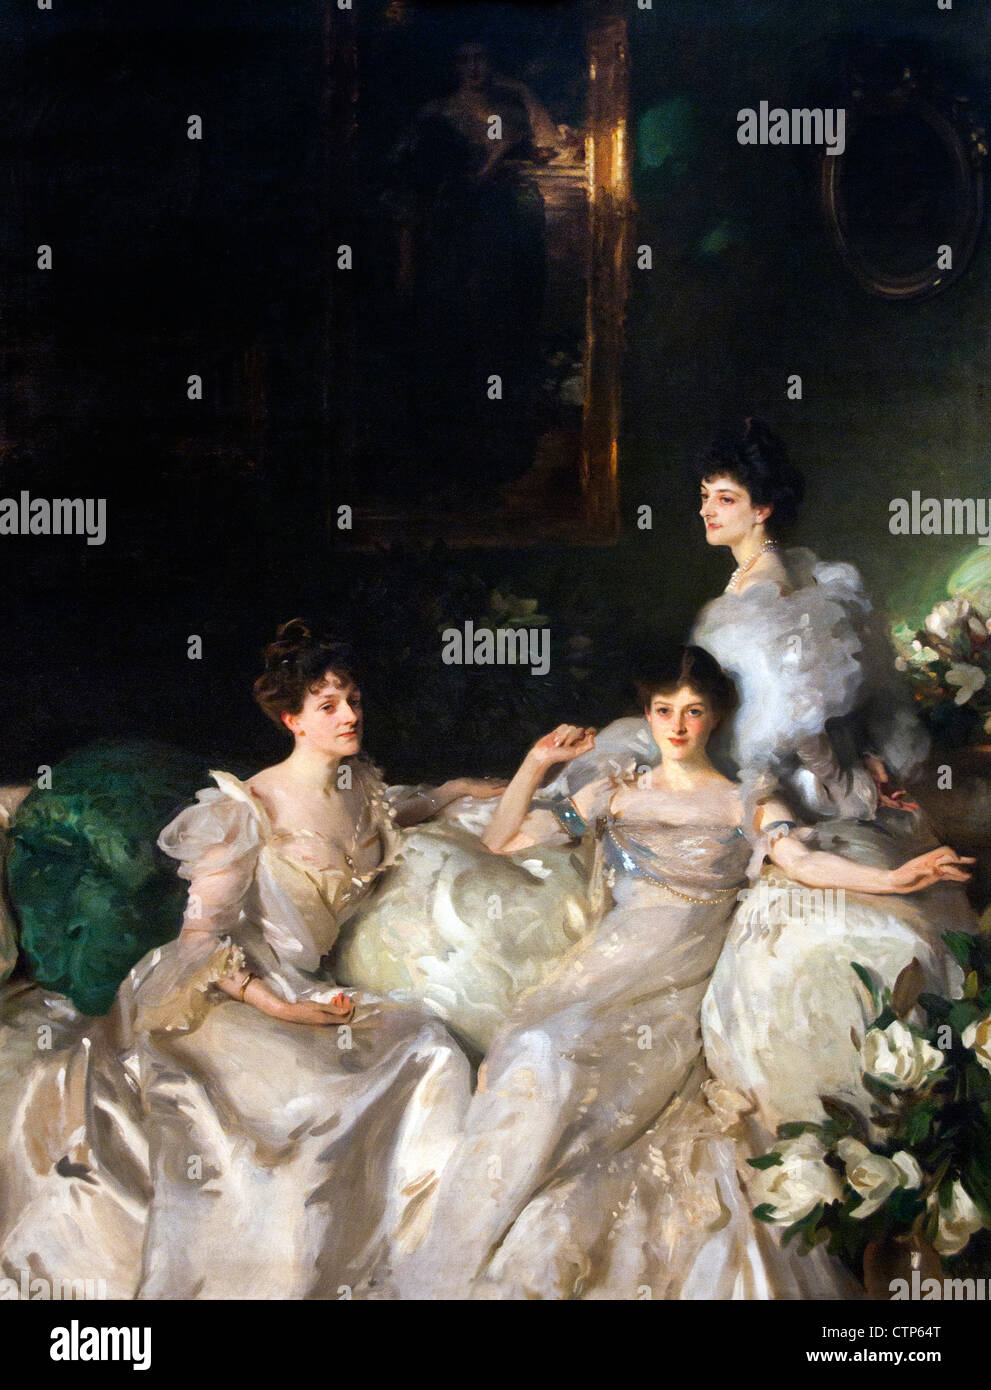 The Wyndham Sisters 1899 John Singer Sargent  American United States of America - Stock Image